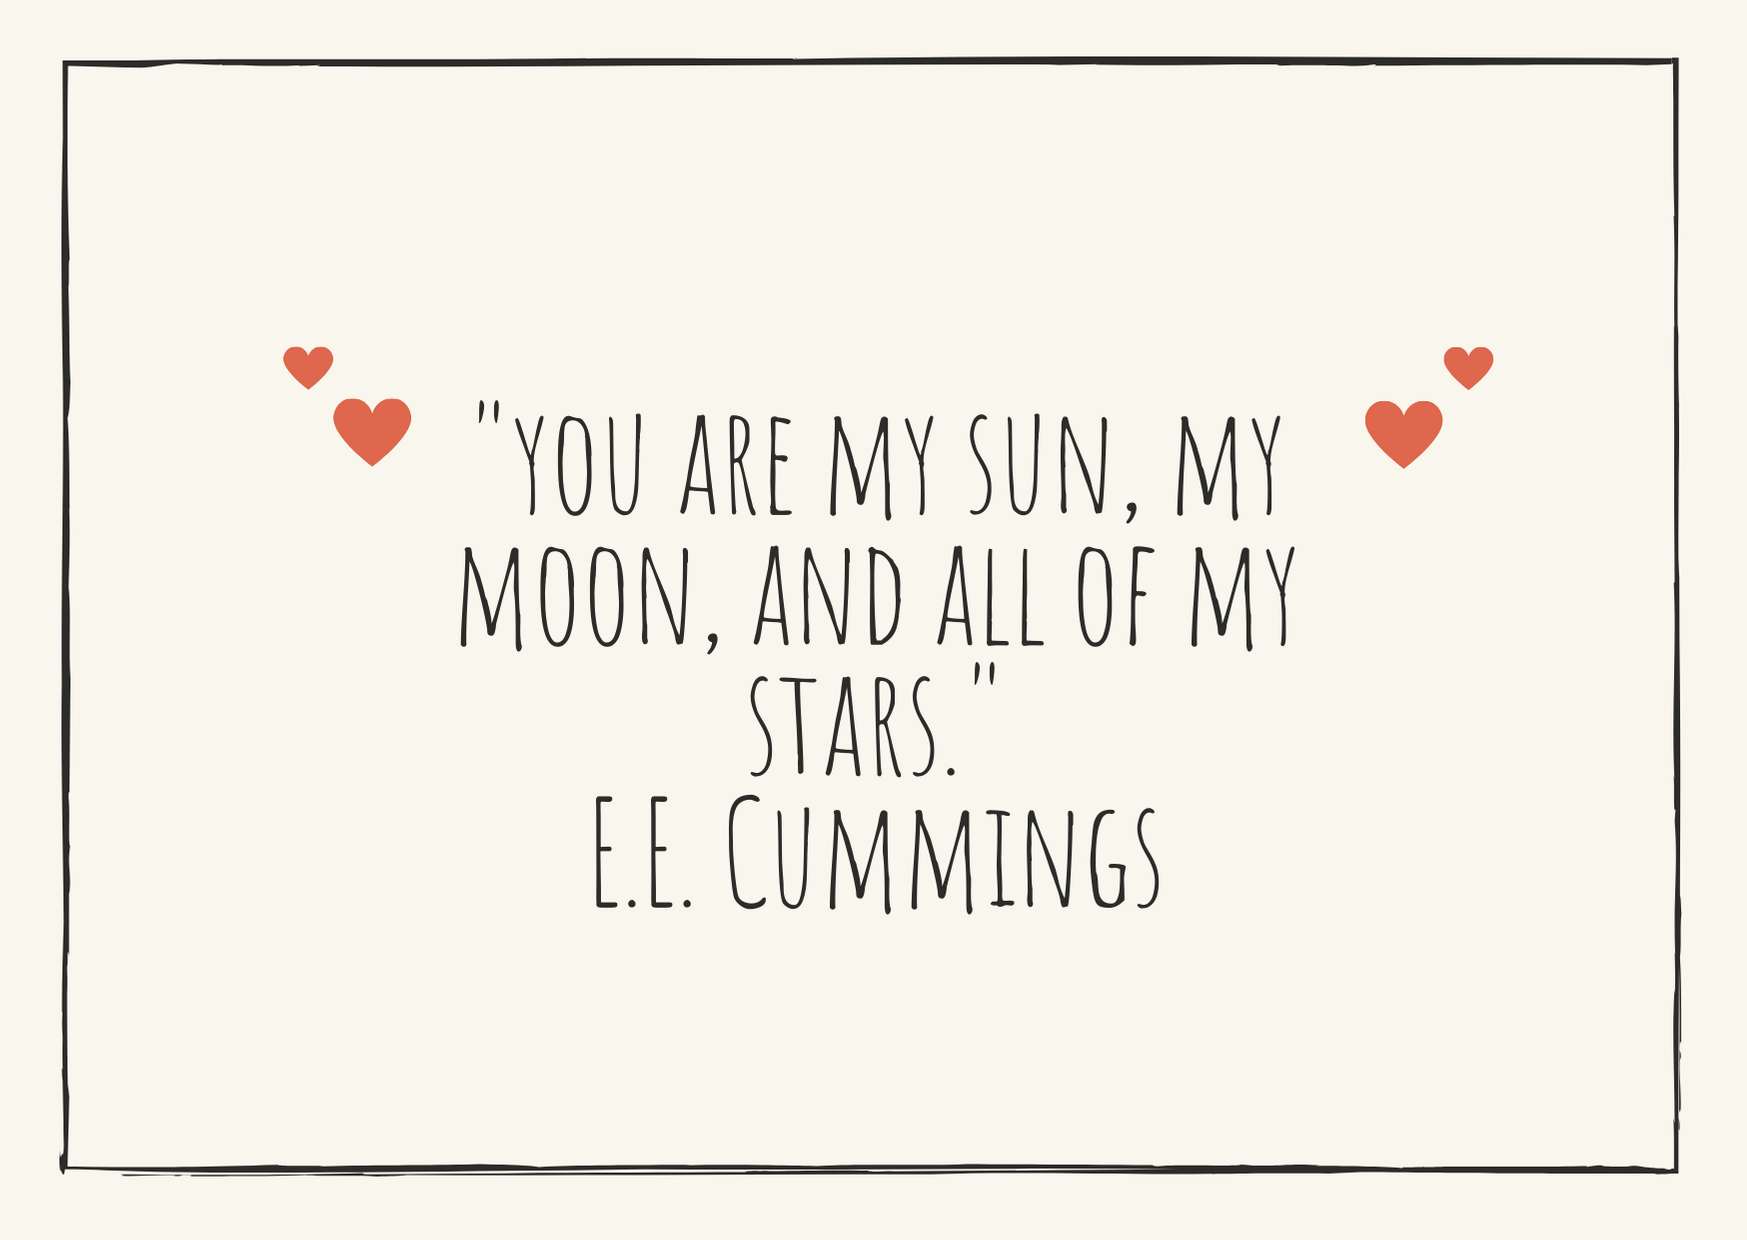 55 Heartfelt Valentine's Day Quotes To Spread The Love